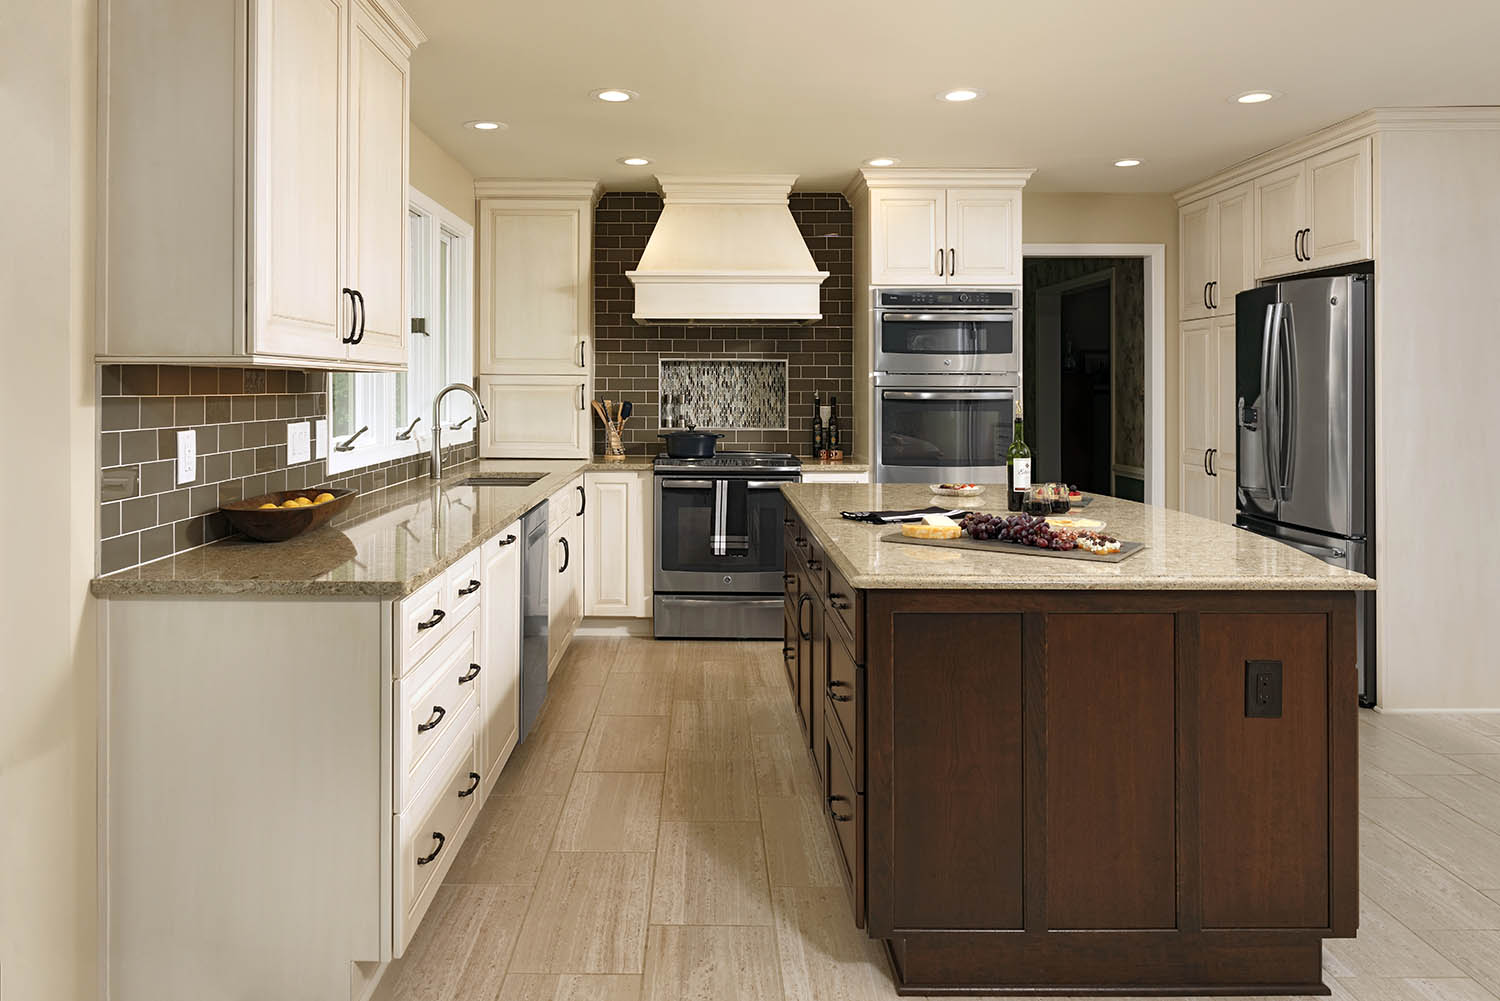 Millennial cream granite countertops